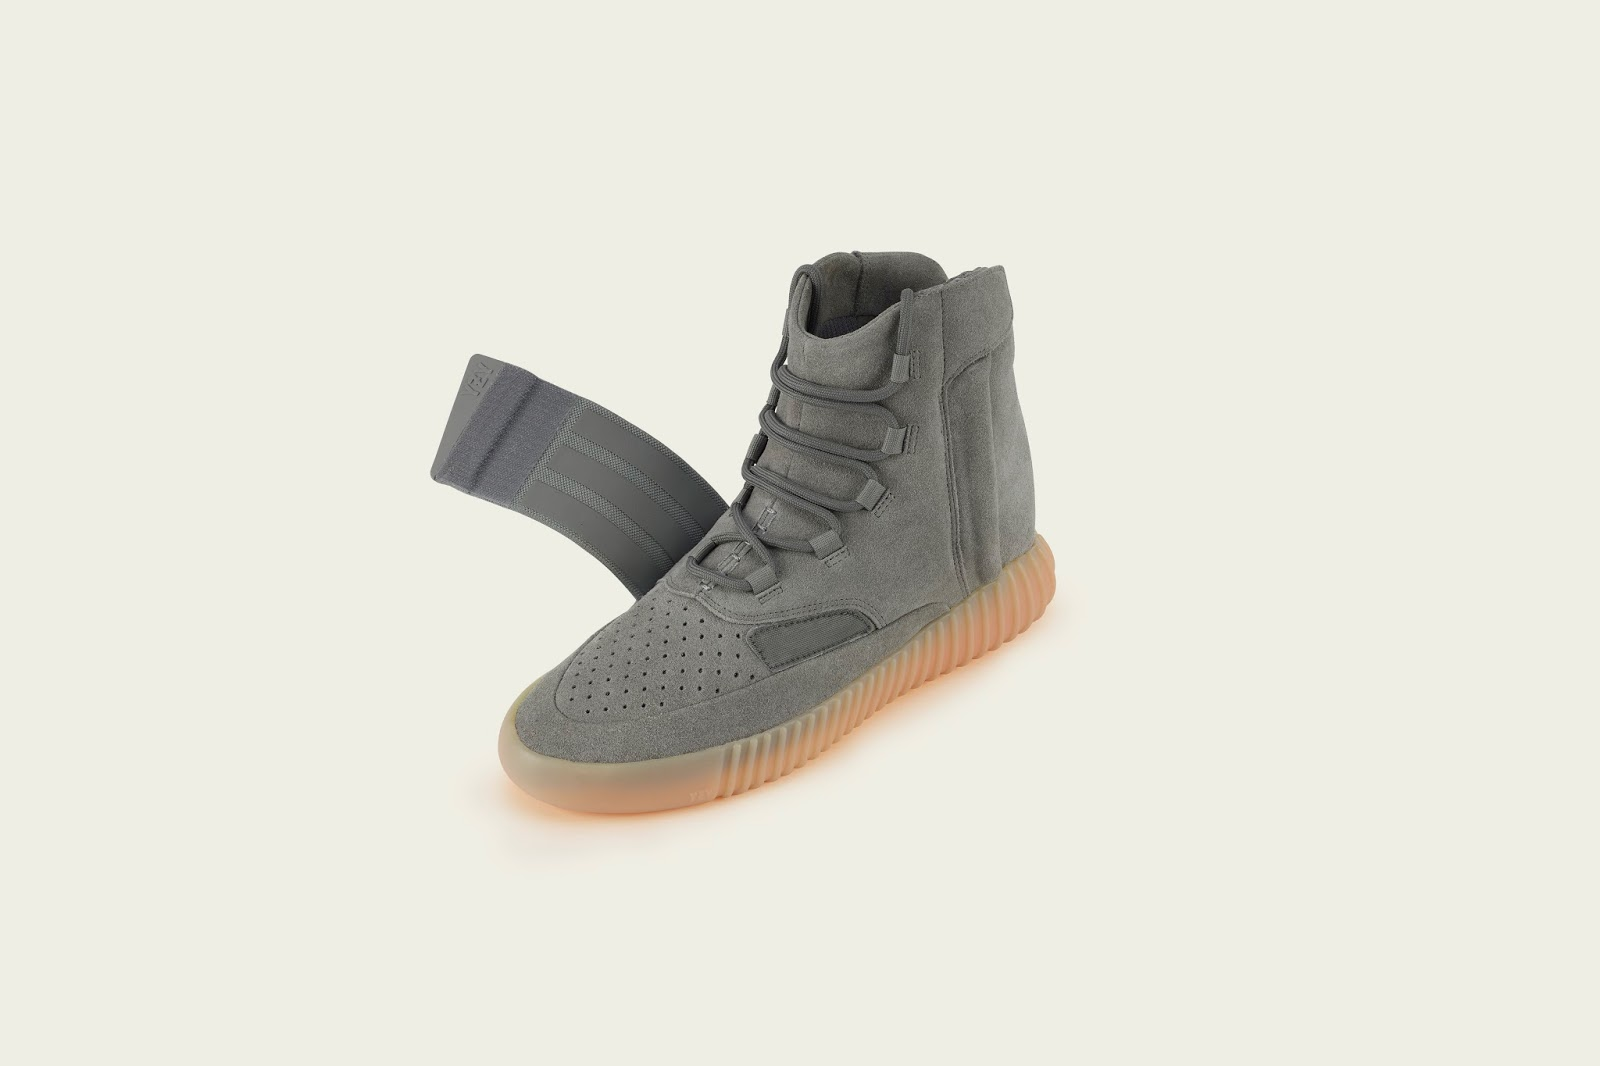 low priced 6fa77 43d16 promo code for yeezy boost 750 grey gum tea 96eb0 edb42